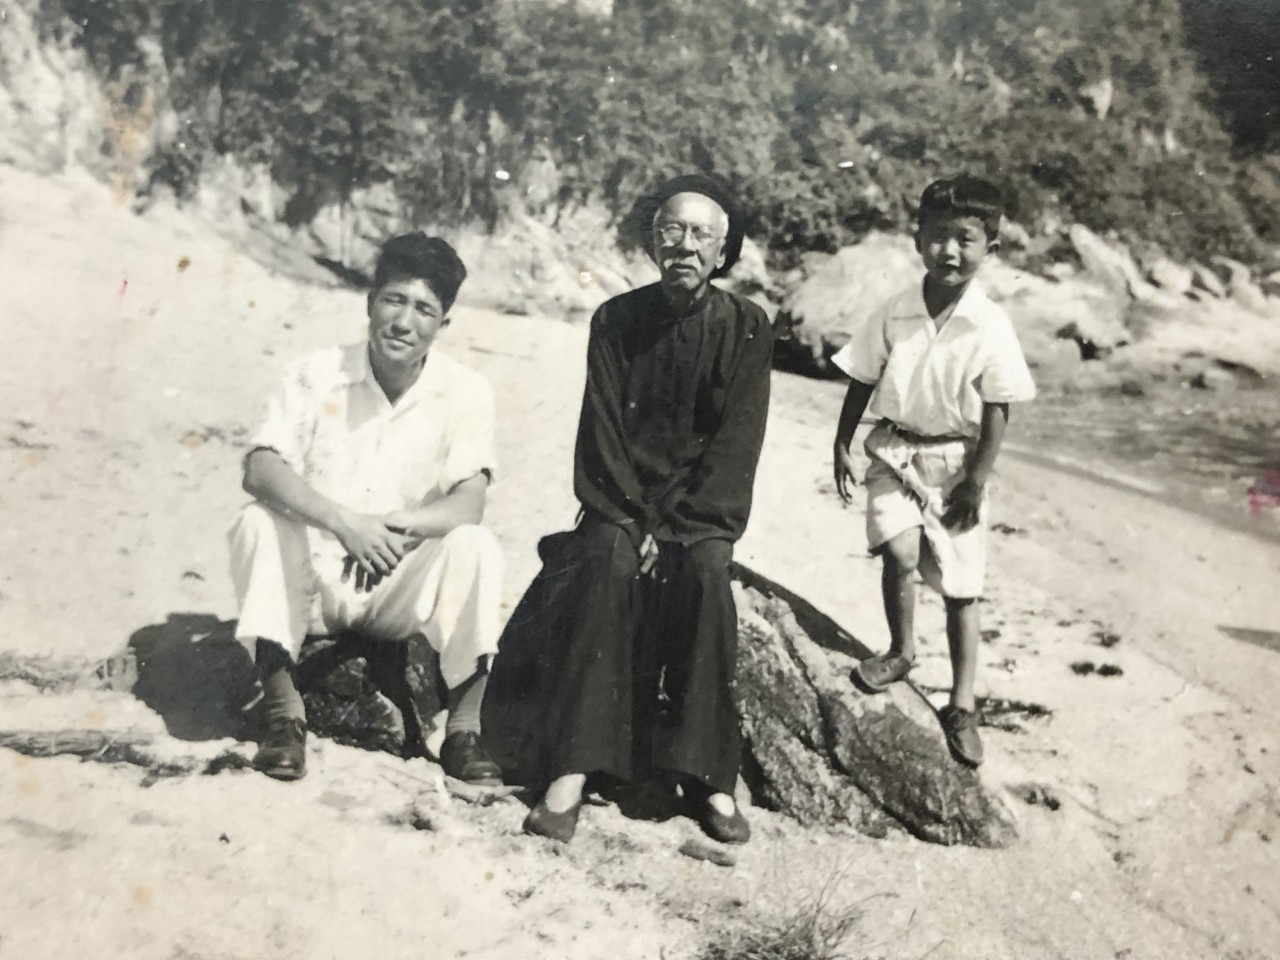 Wang Zhengang (left), Teo Eng Hock (center), and Peter Wang.